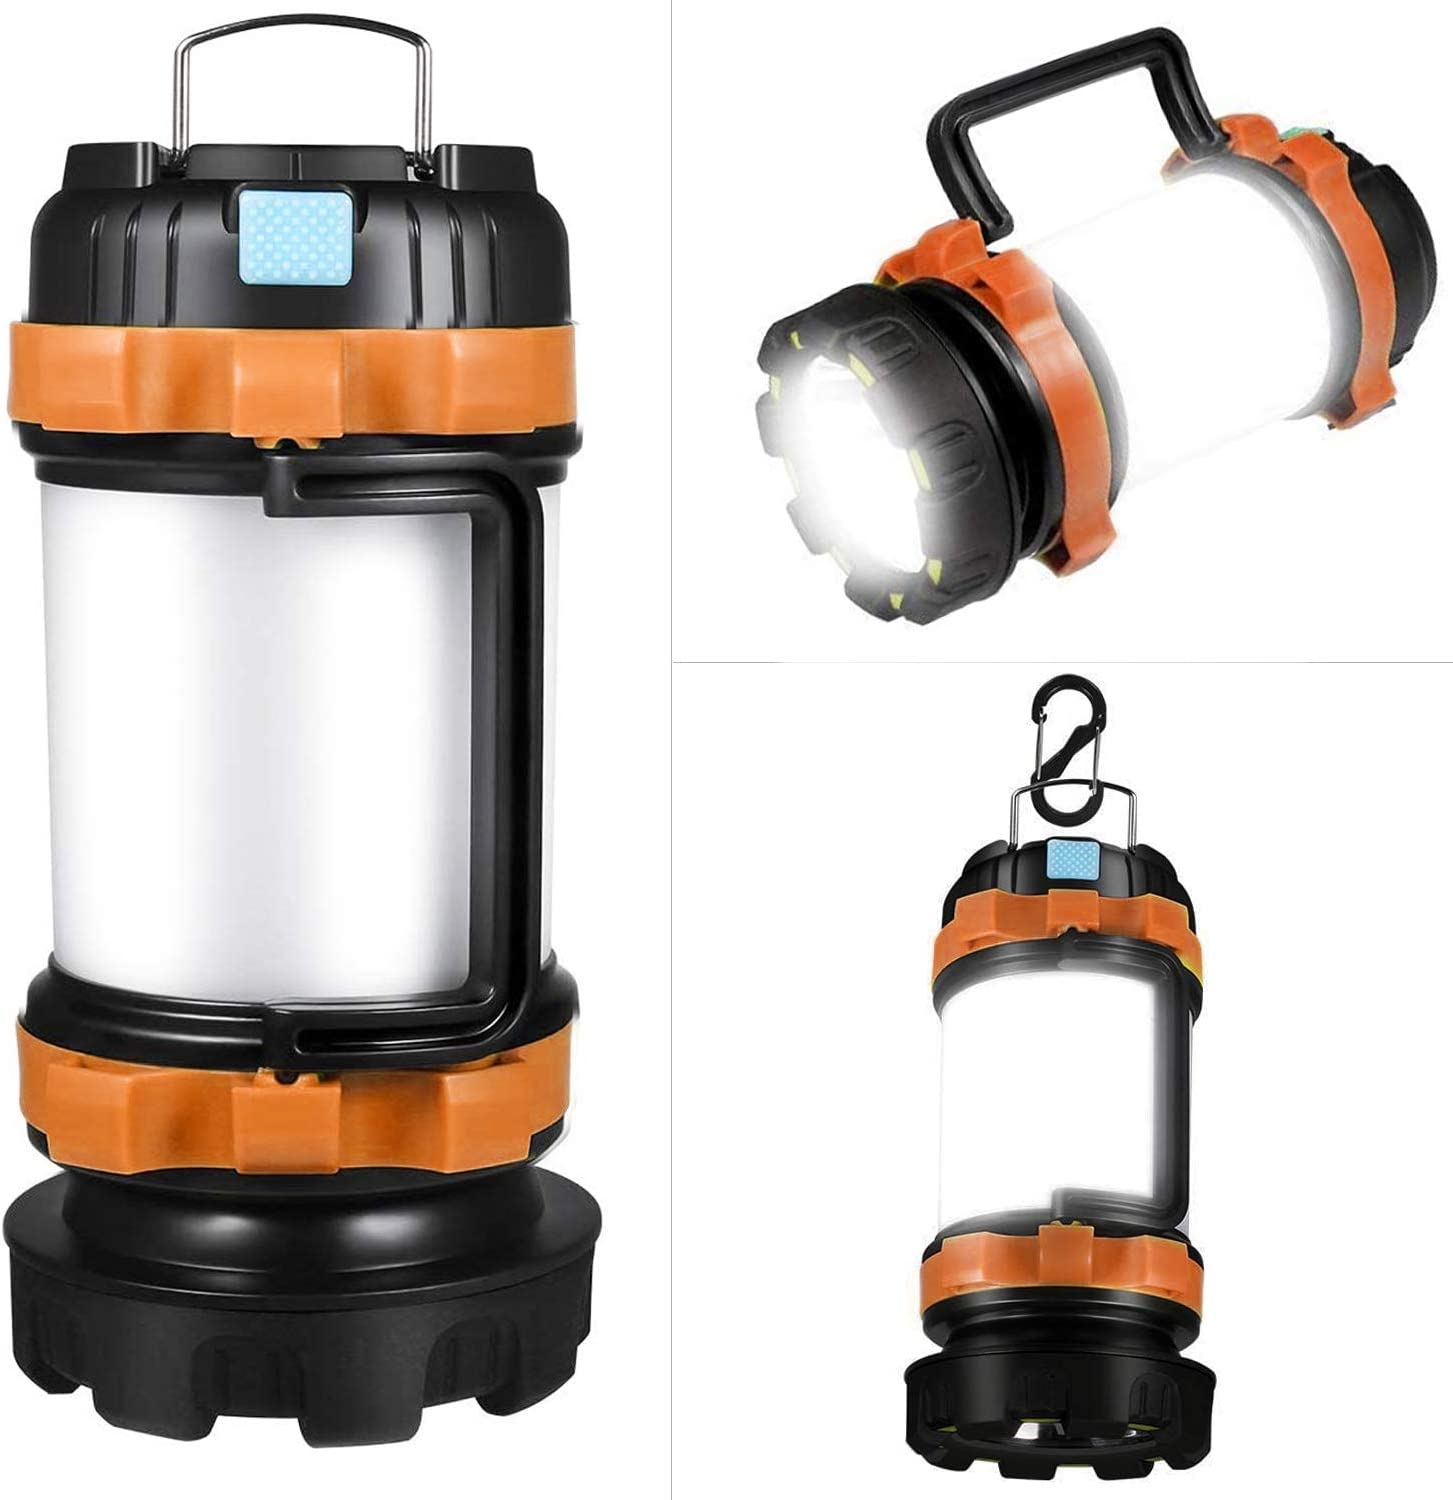 Rechargeable LED Camping Lantern, Portable Survival Flashlights Lanterns 6 Light Modes, 3600mAh Power Bank, IPX4 Waterproof, Perfect for Hurricane Emergency, Outdoor, Hiking and Home (orange)